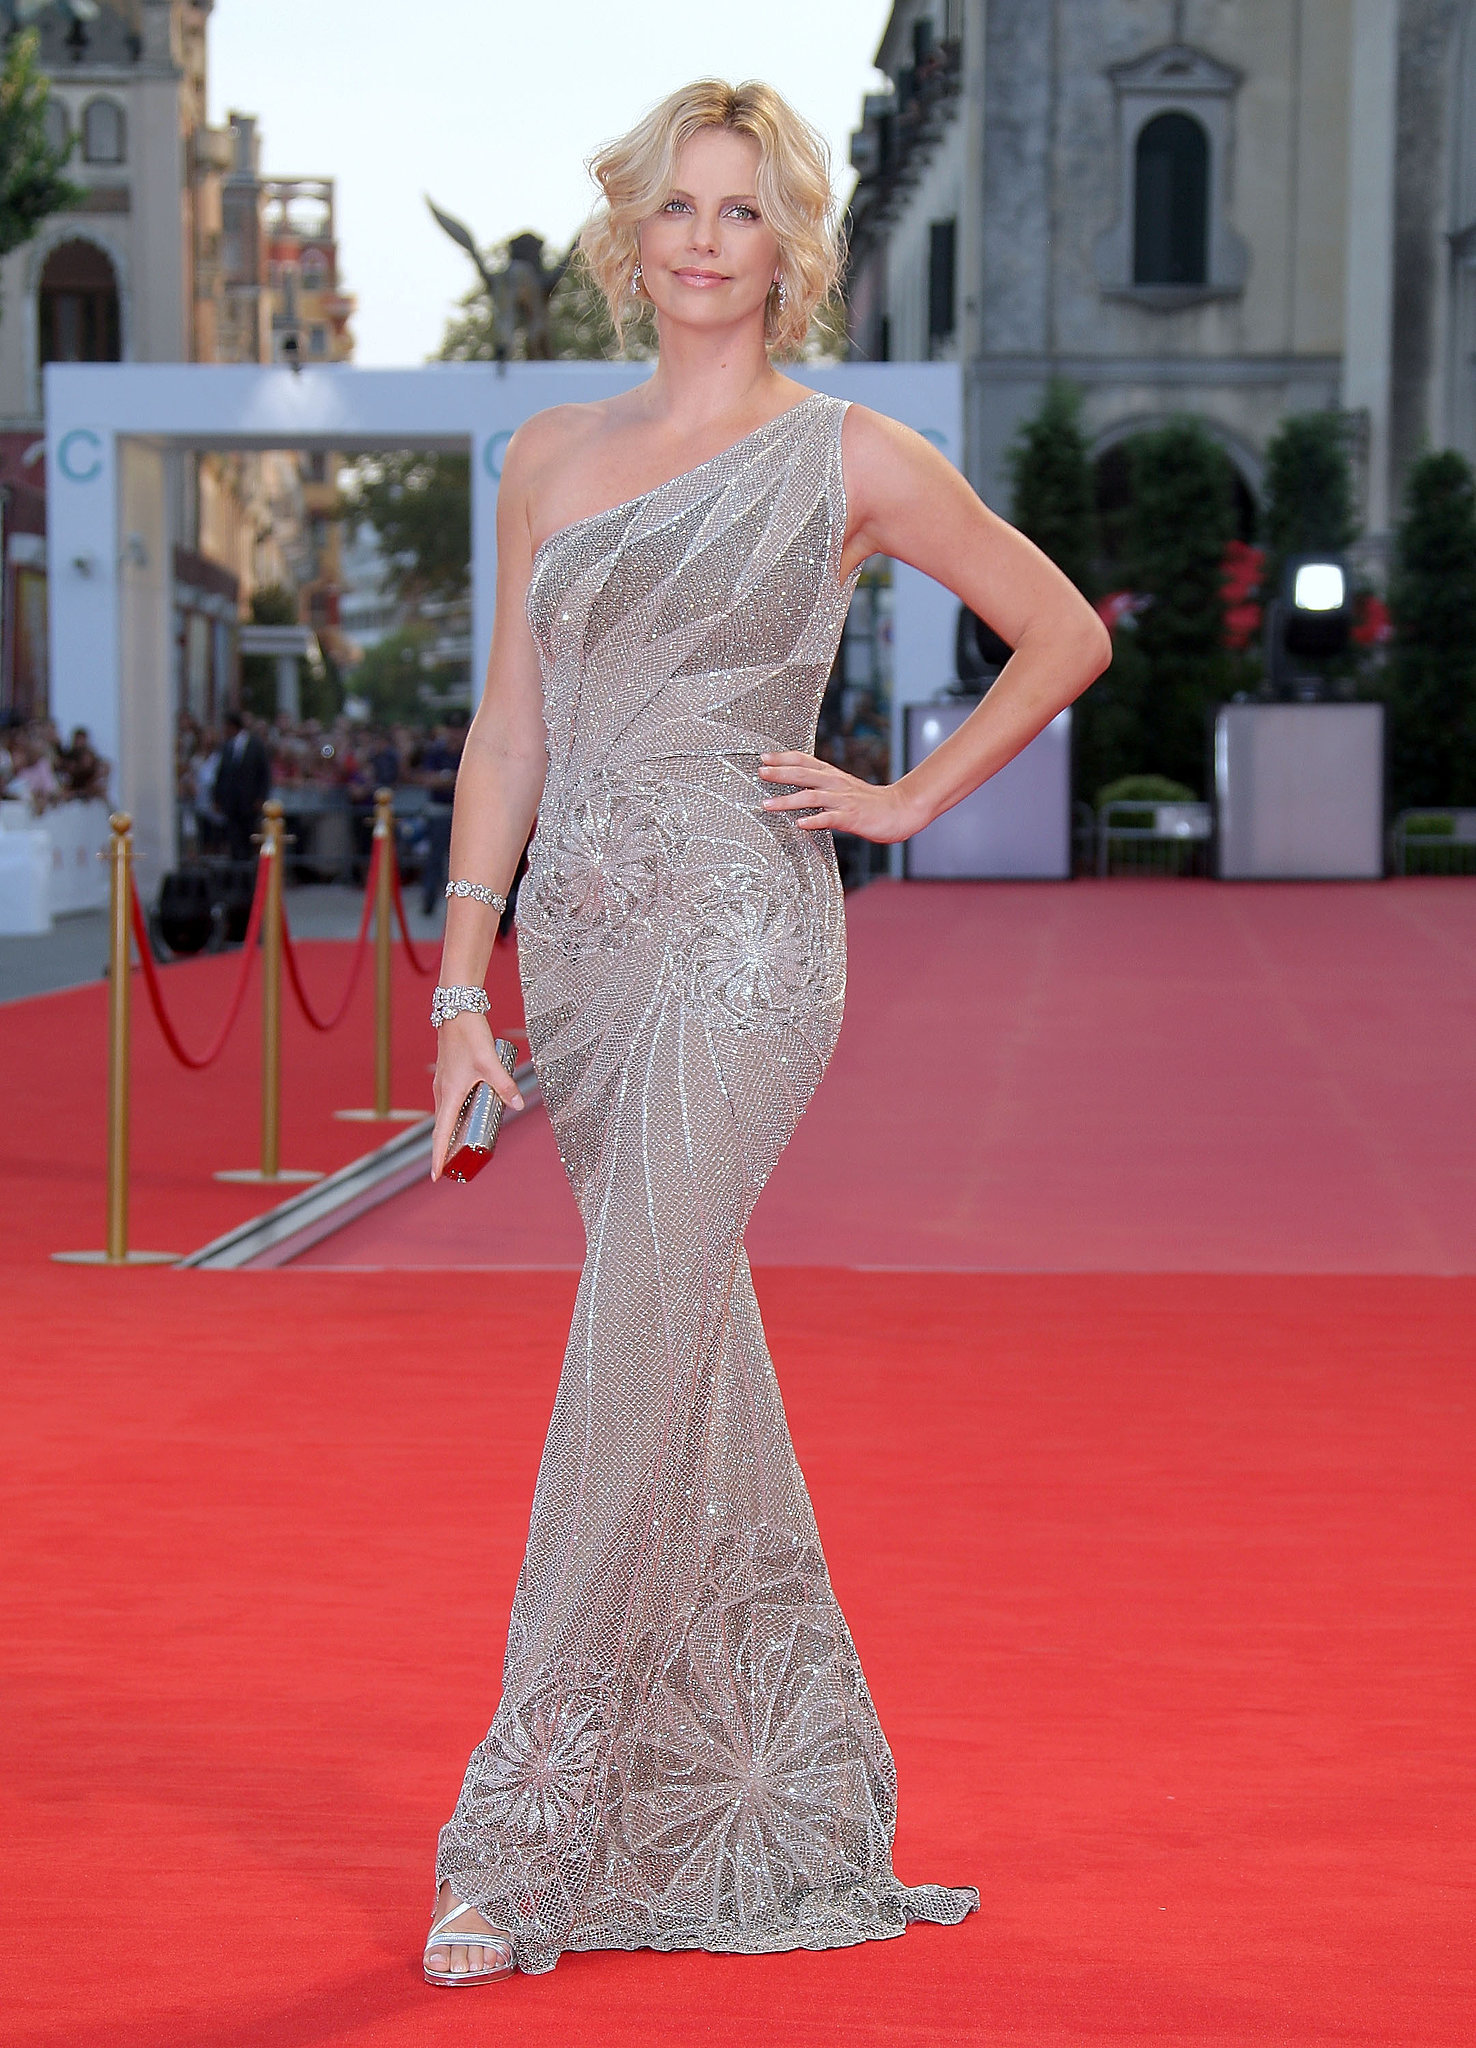 Charlize Theron at the Venice Film Festival